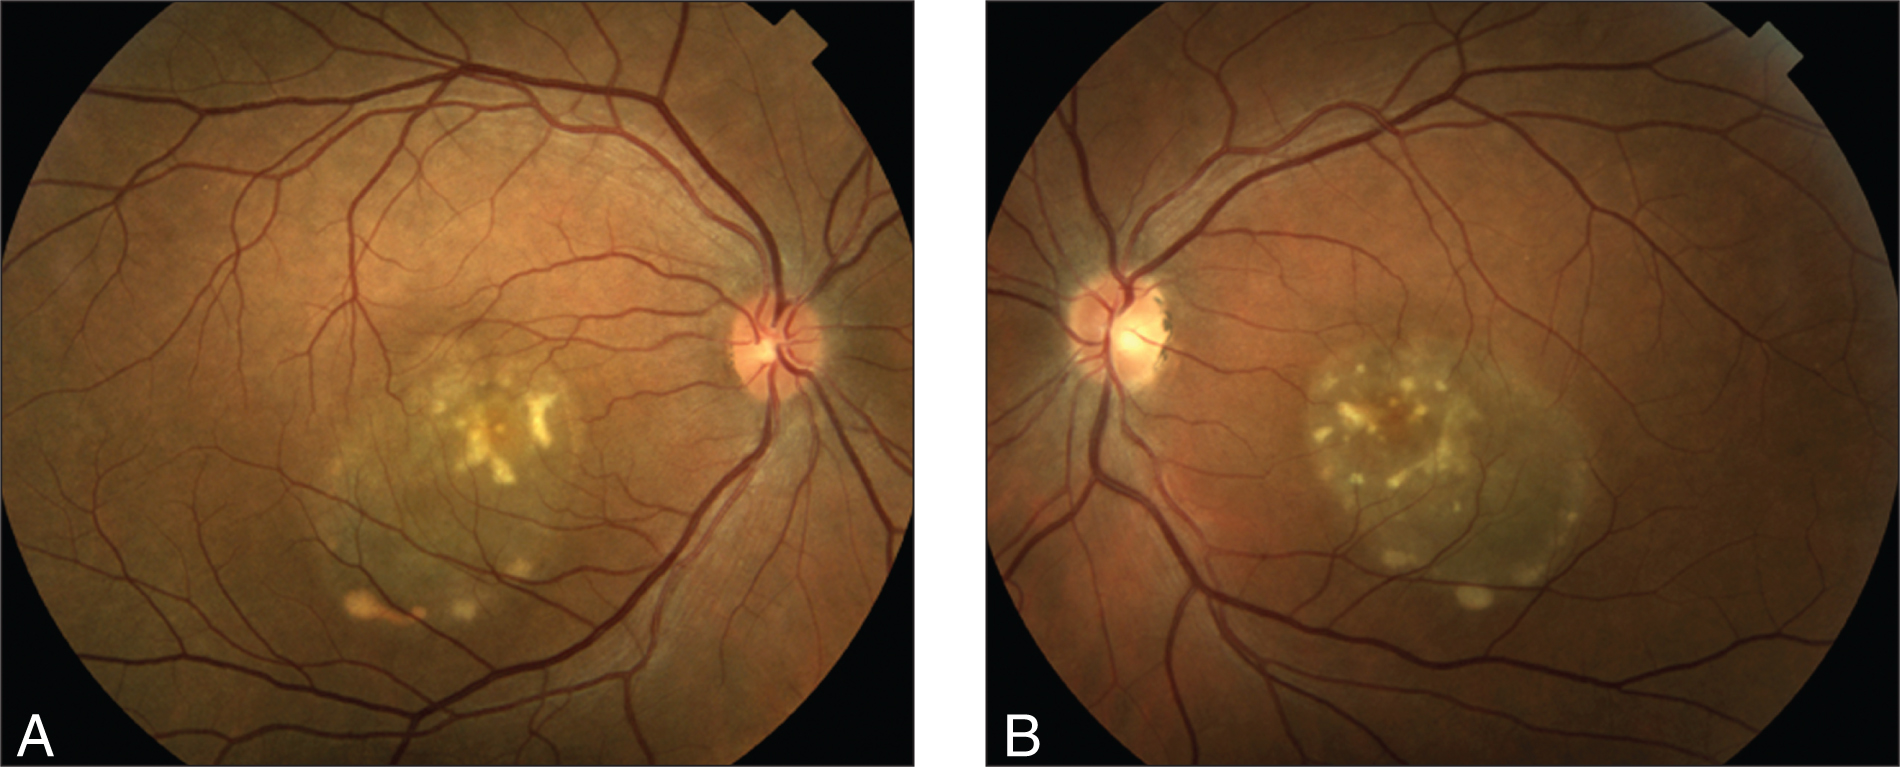 Right (A) and Left (B) Fundus Photographs of the Bilateral Vitelliruptive Lesions in the Patient's Father.